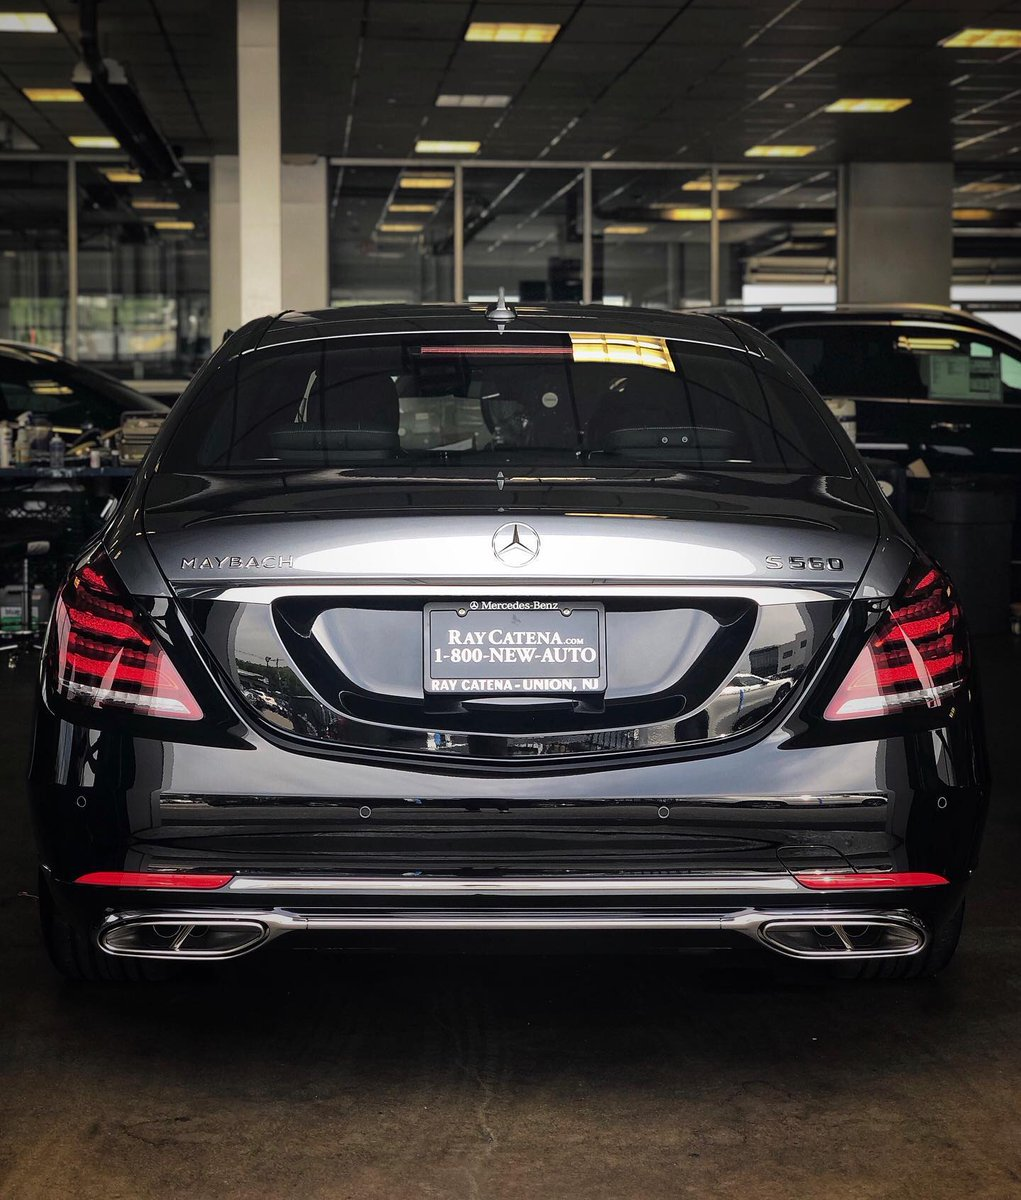 Ray Catena Mercedes >> Mercedes Benz Of Union On Twitter Two Toned Maybach S